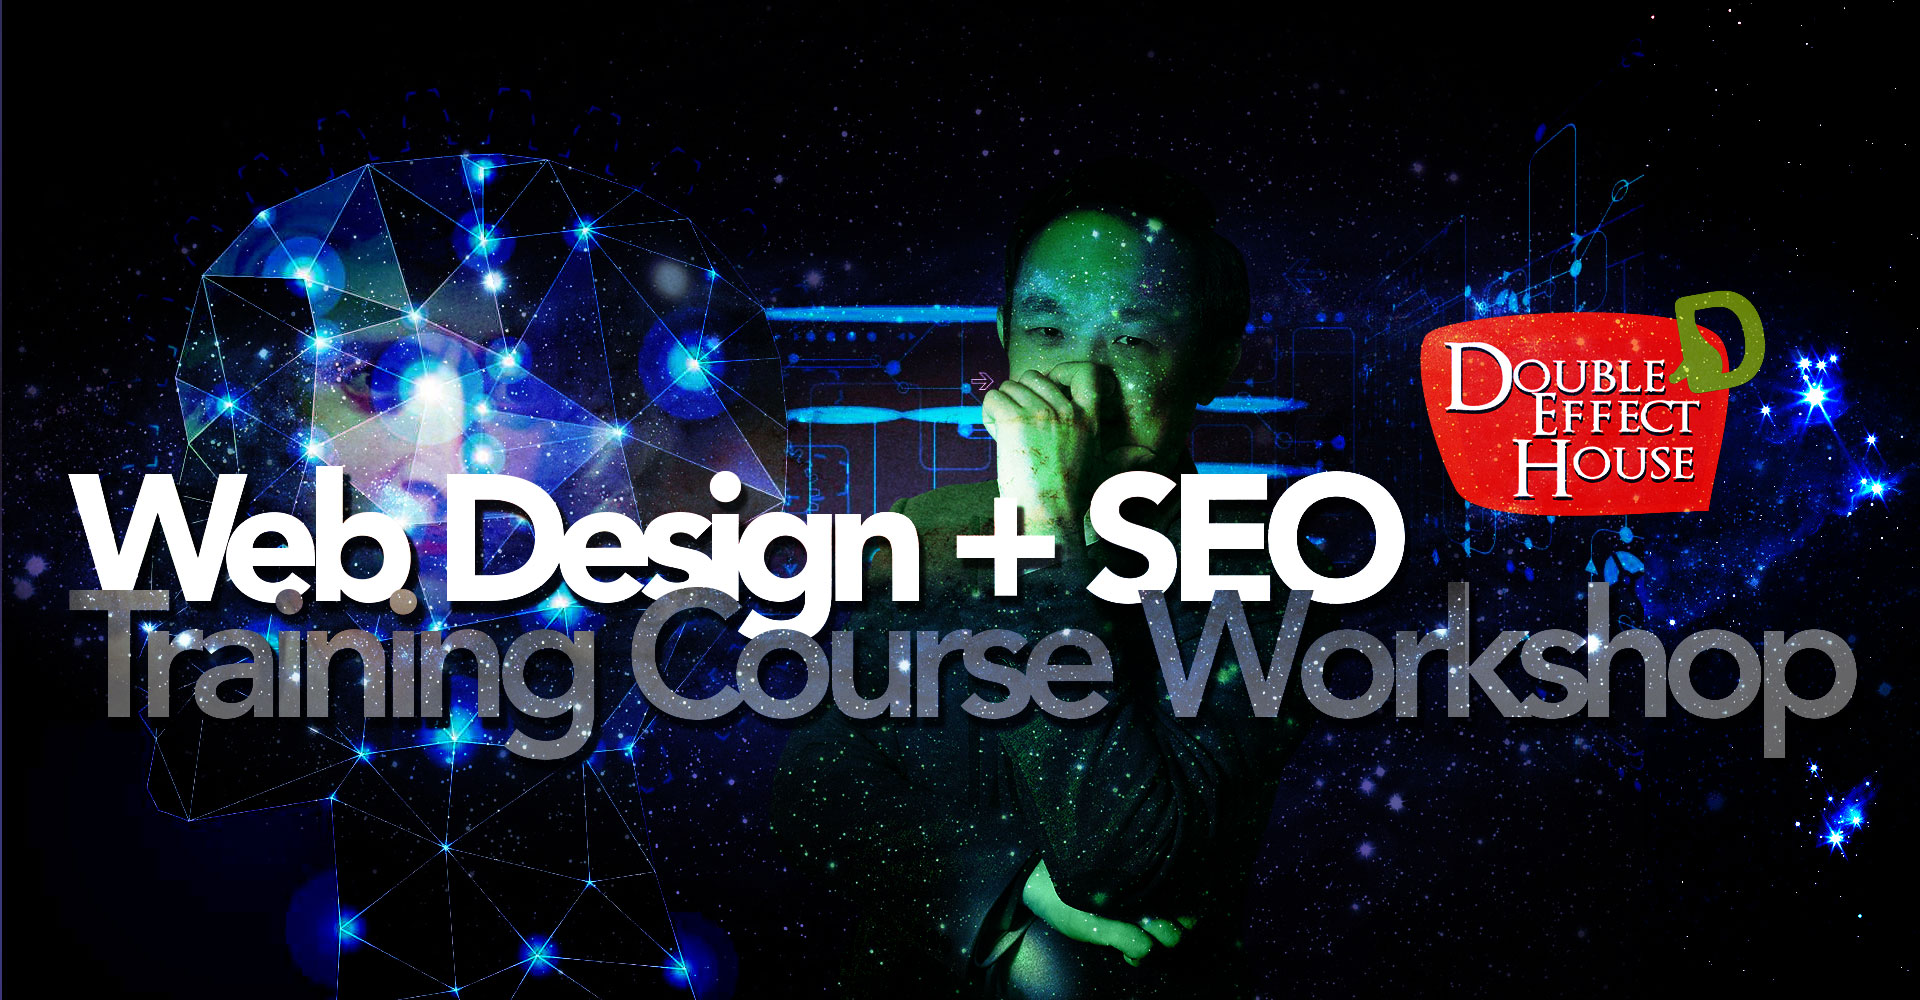 Web Design with SEO (Search Engine Optimization) Training Course Workshop Nang DMI Trainer